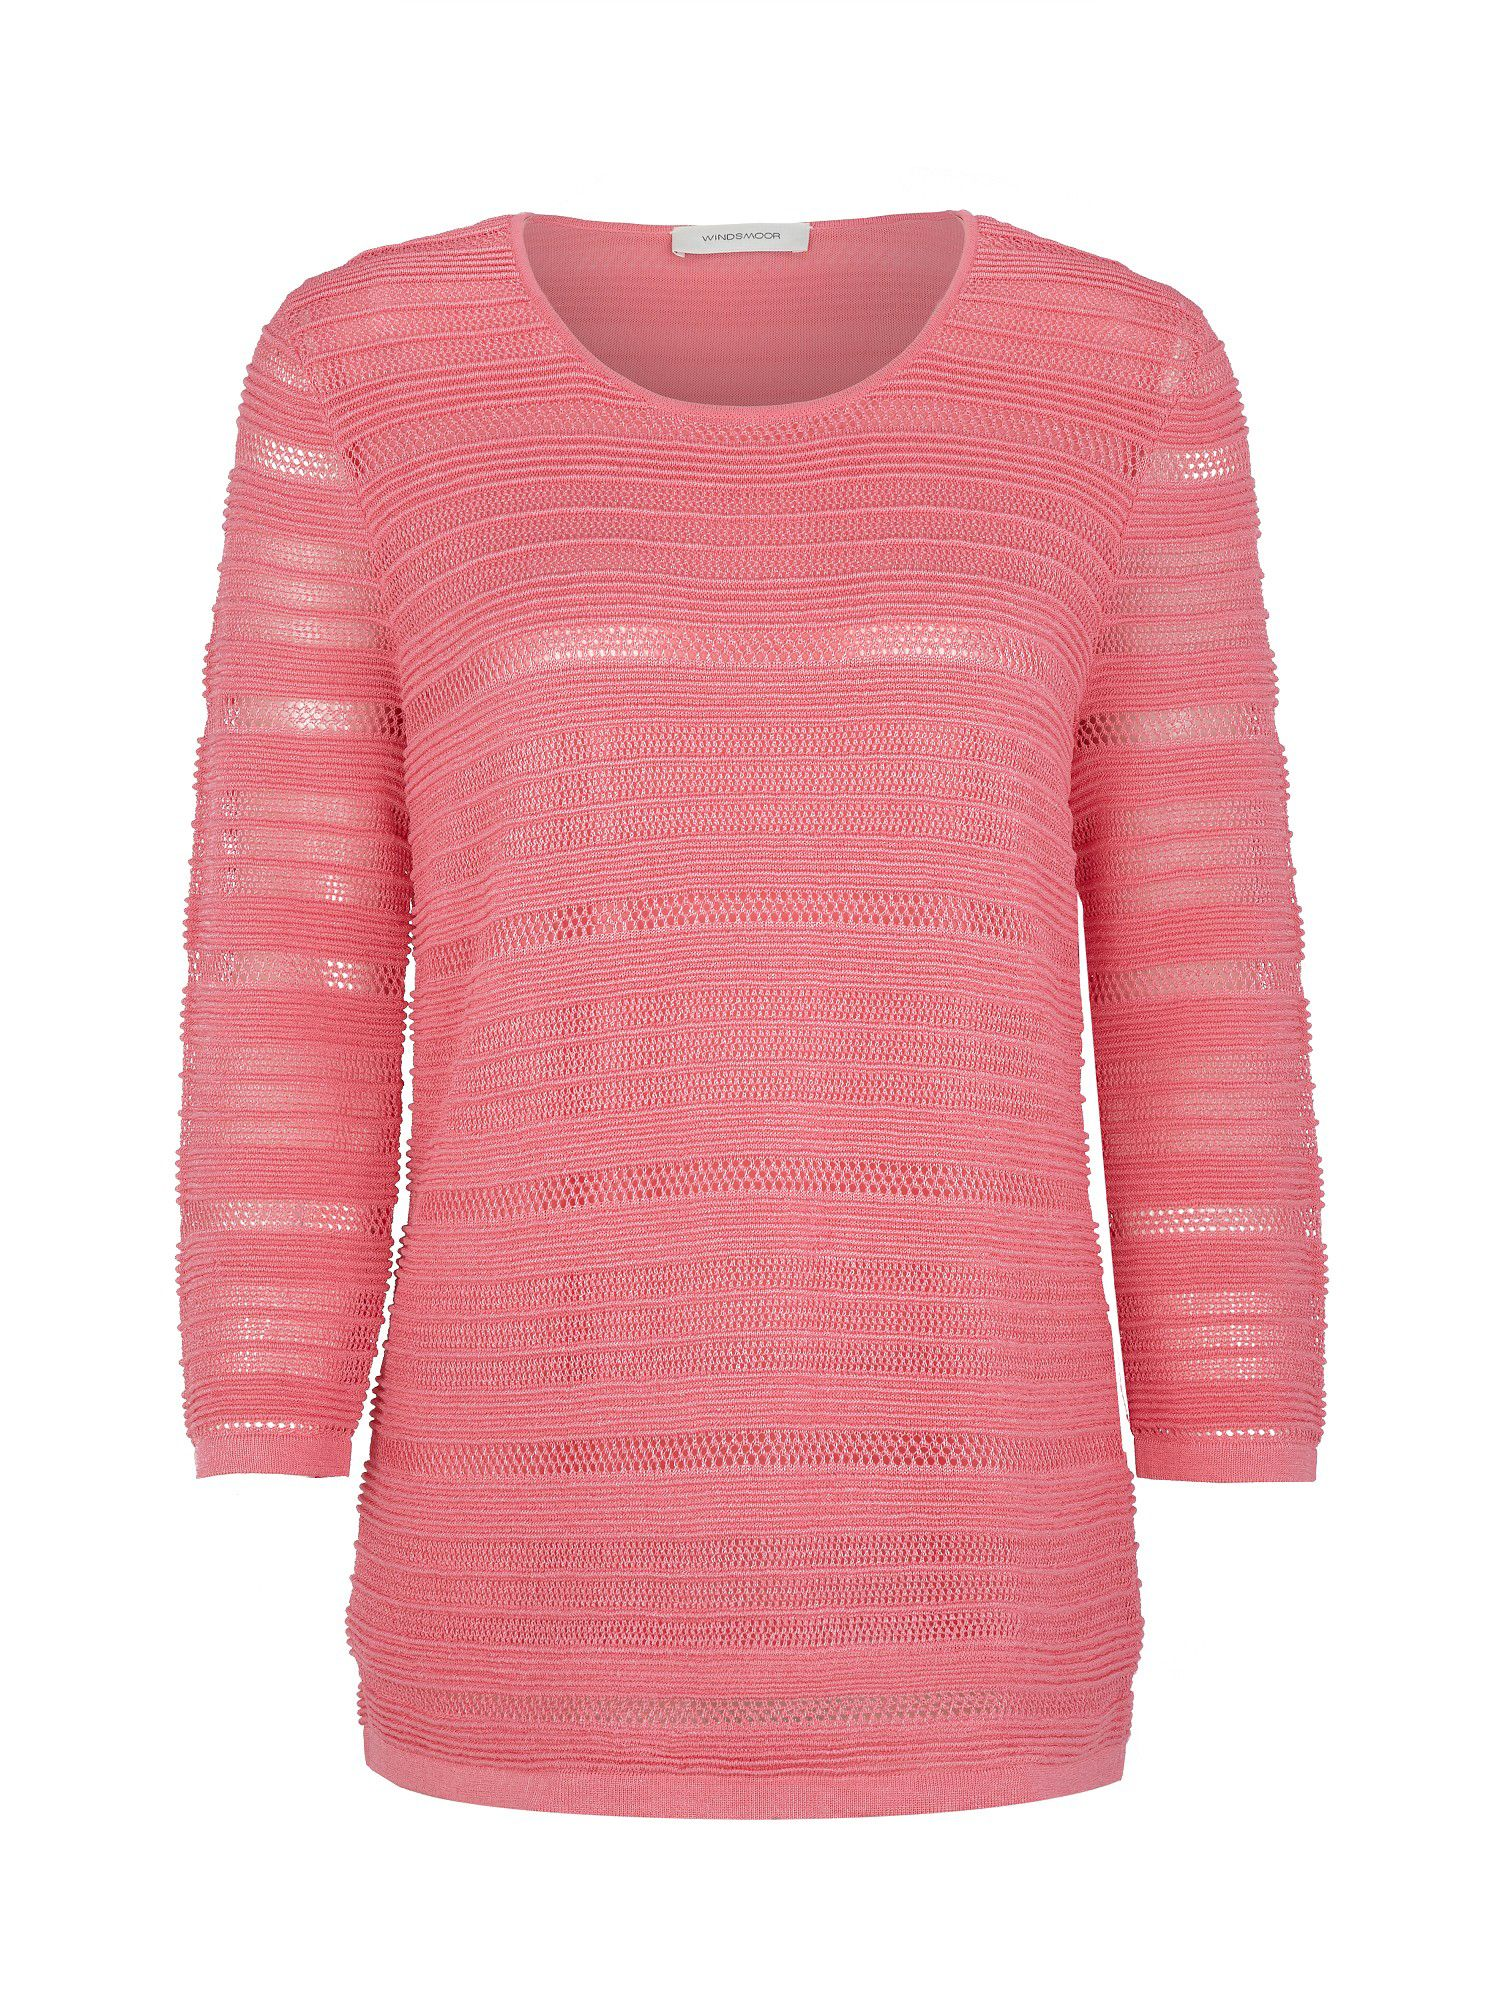 Rose textured jumper